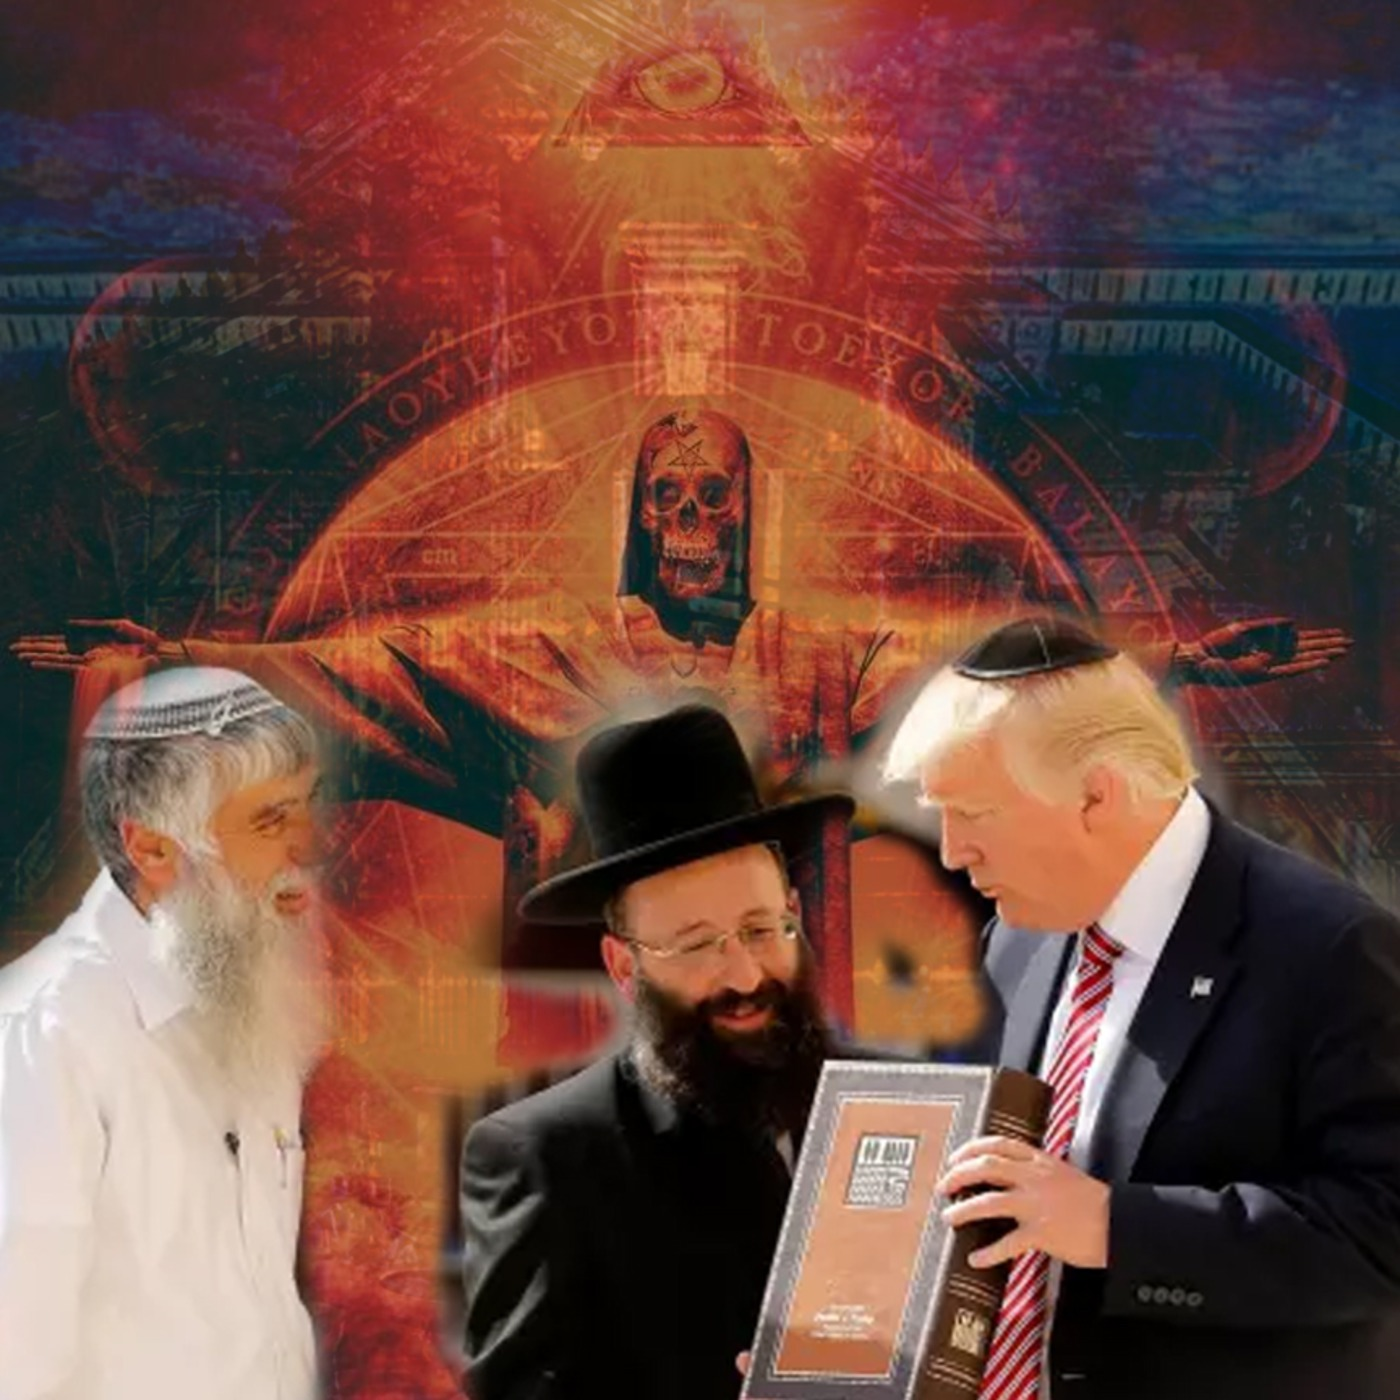 Trump, The Rabbis, The Temple & The Antichrist PART 2 Sheila